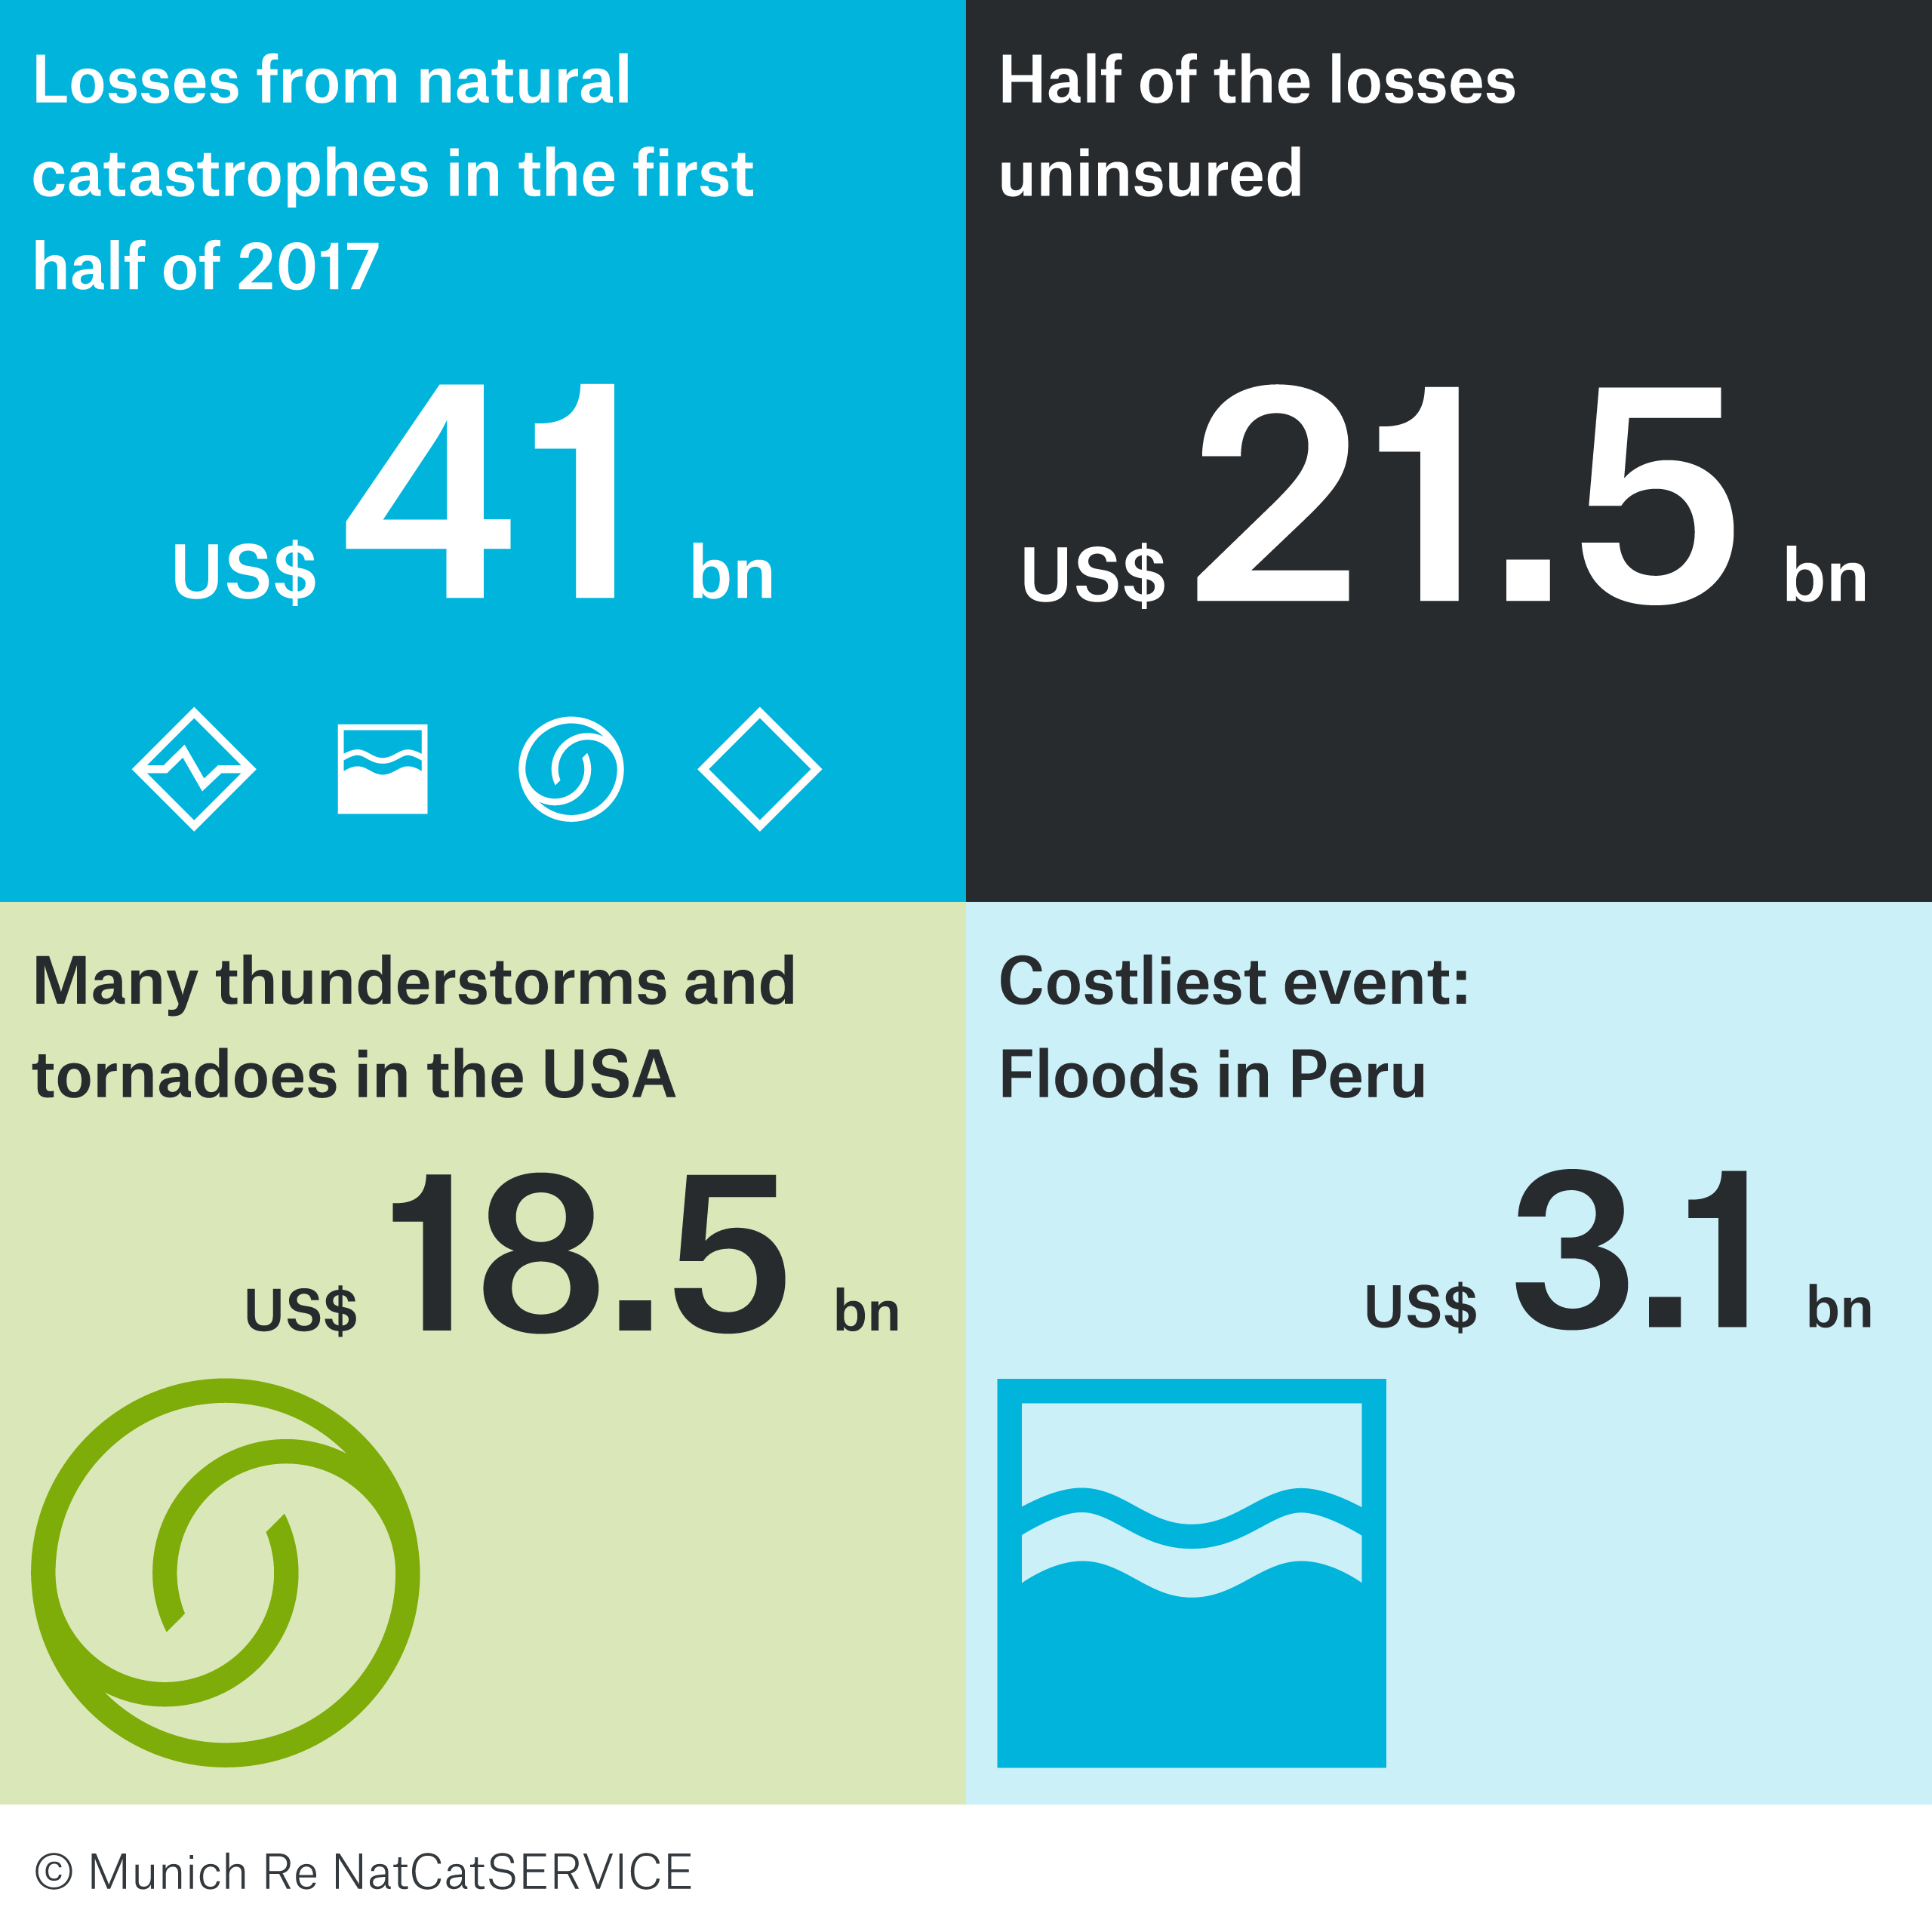 Natural catastrophe review for the first half of 2017: A series of powerful thunderstorms in the USA causes large losses